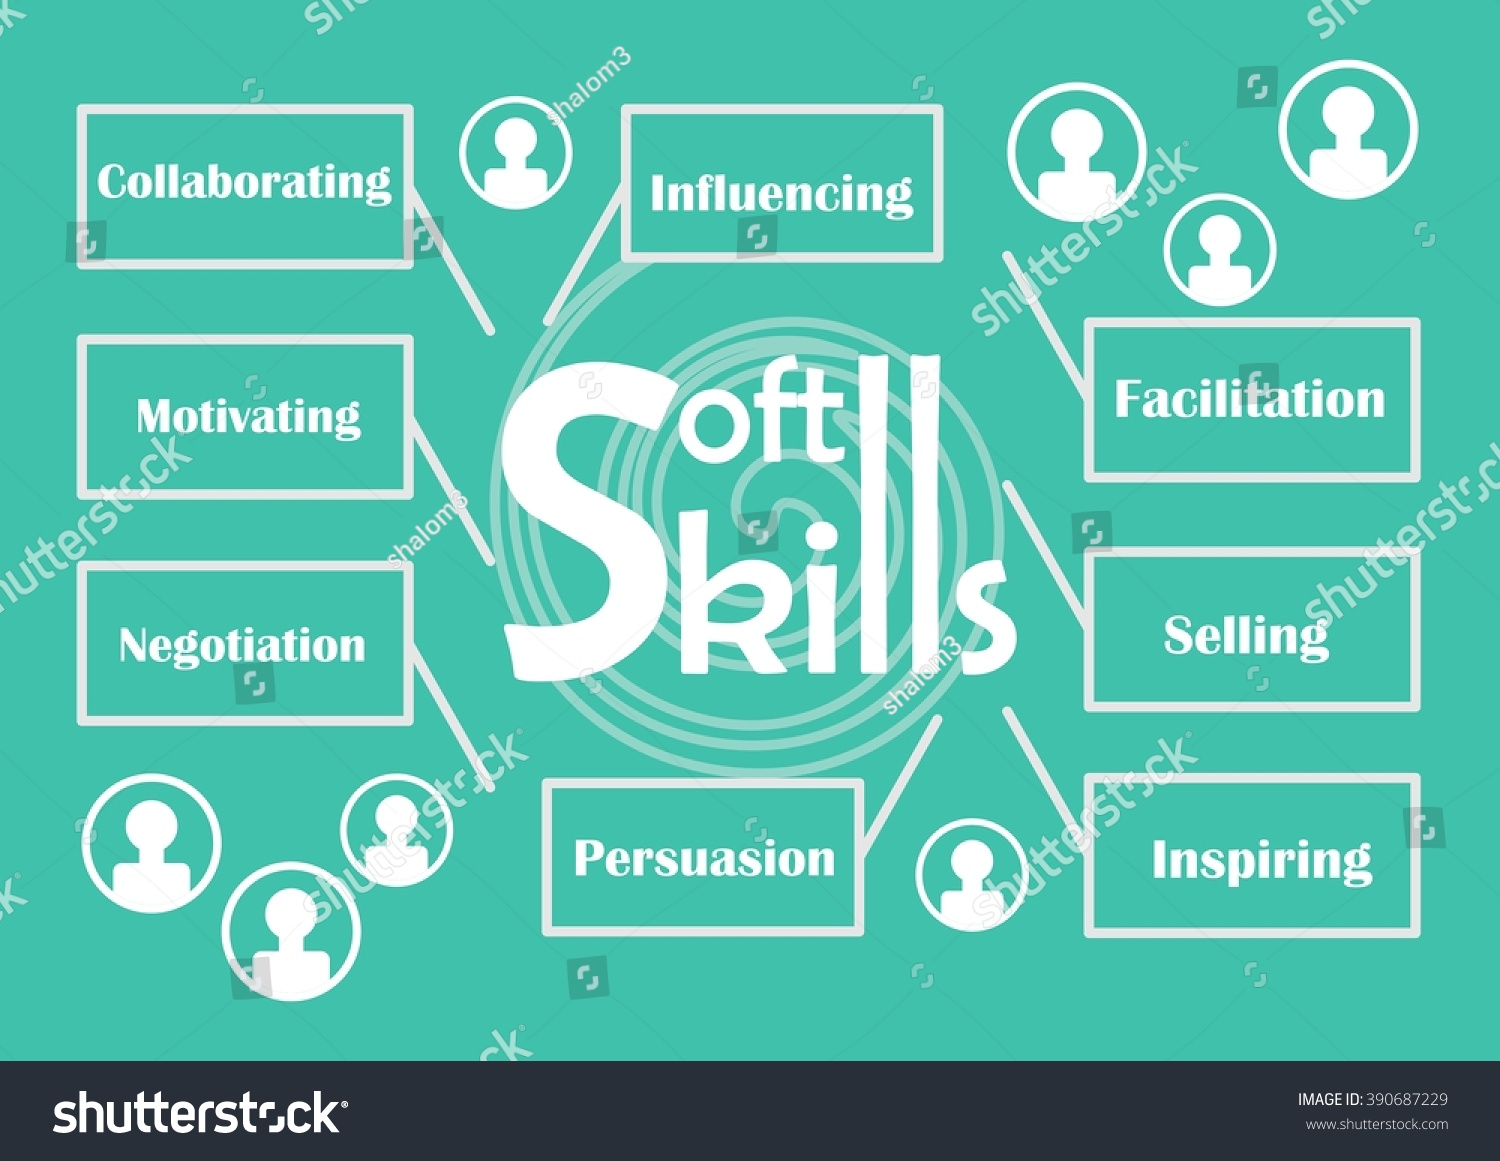 soft skills theme labels influencing facilitation stock vector soft skills theme labels influencing facilitation selling inspiring persuasion